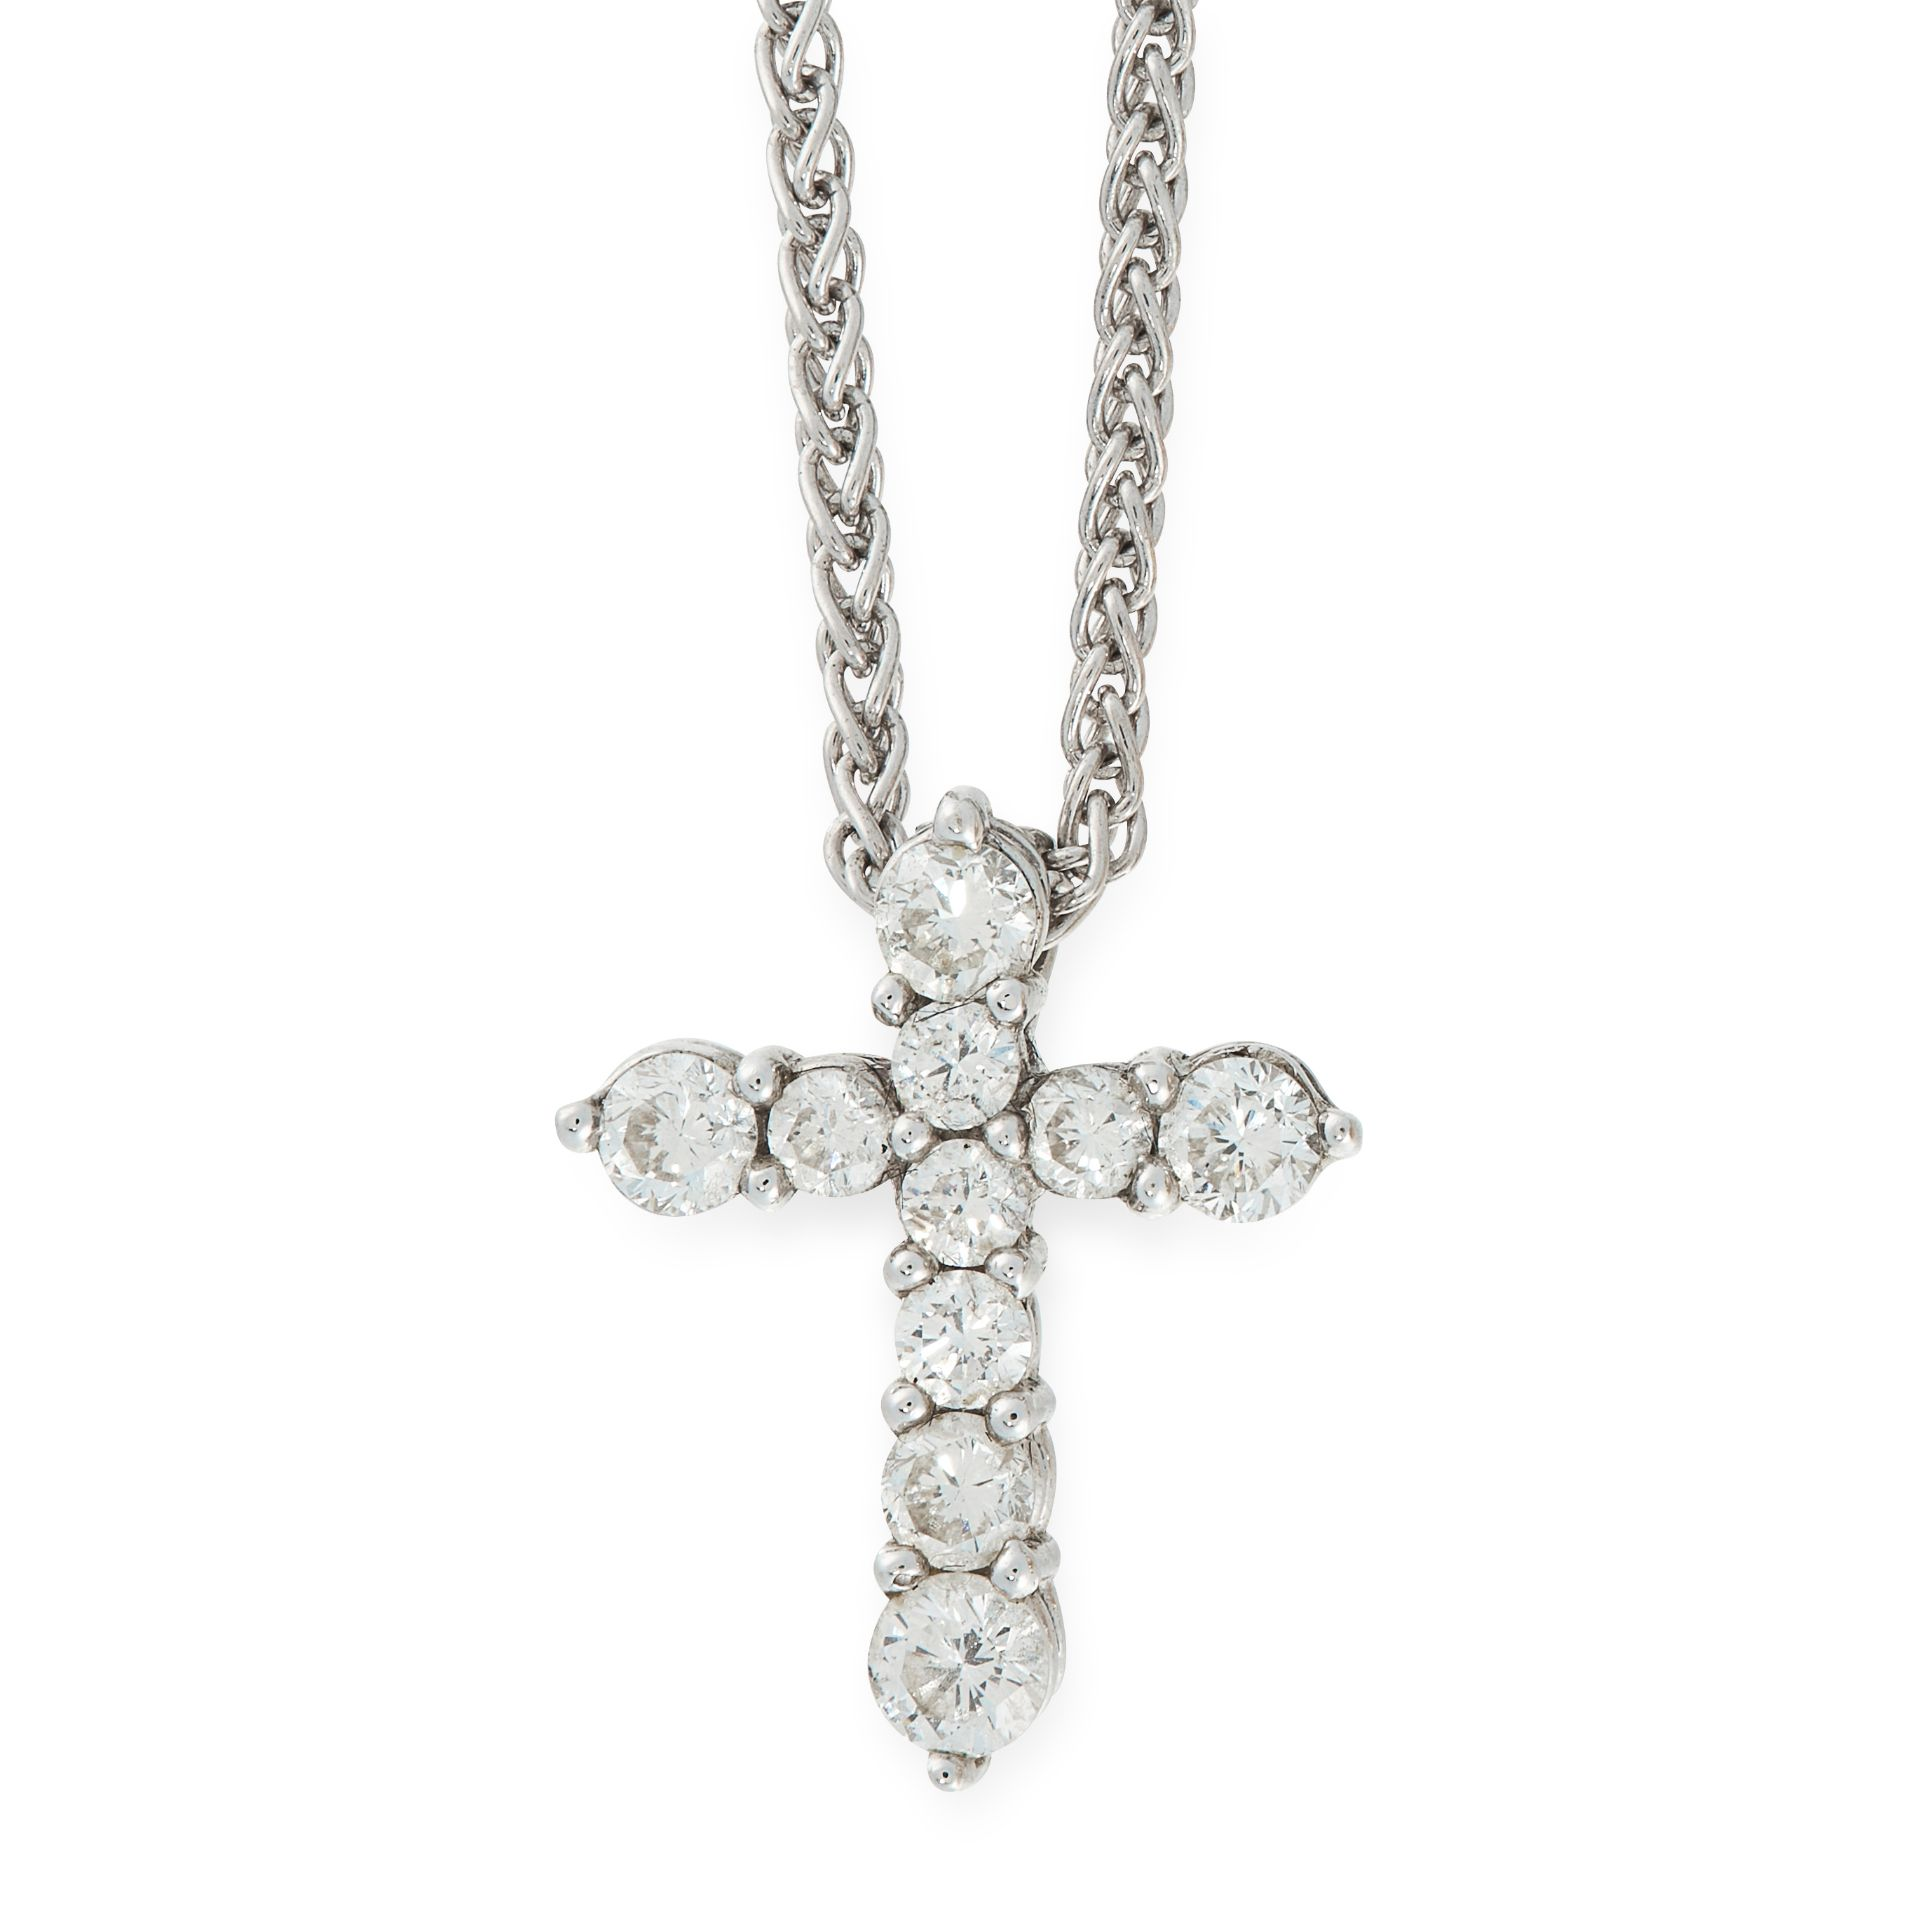 A DIAMOND CROSS PENDANT AND CHAIN in white gold, the cross is set with round cut diamonds